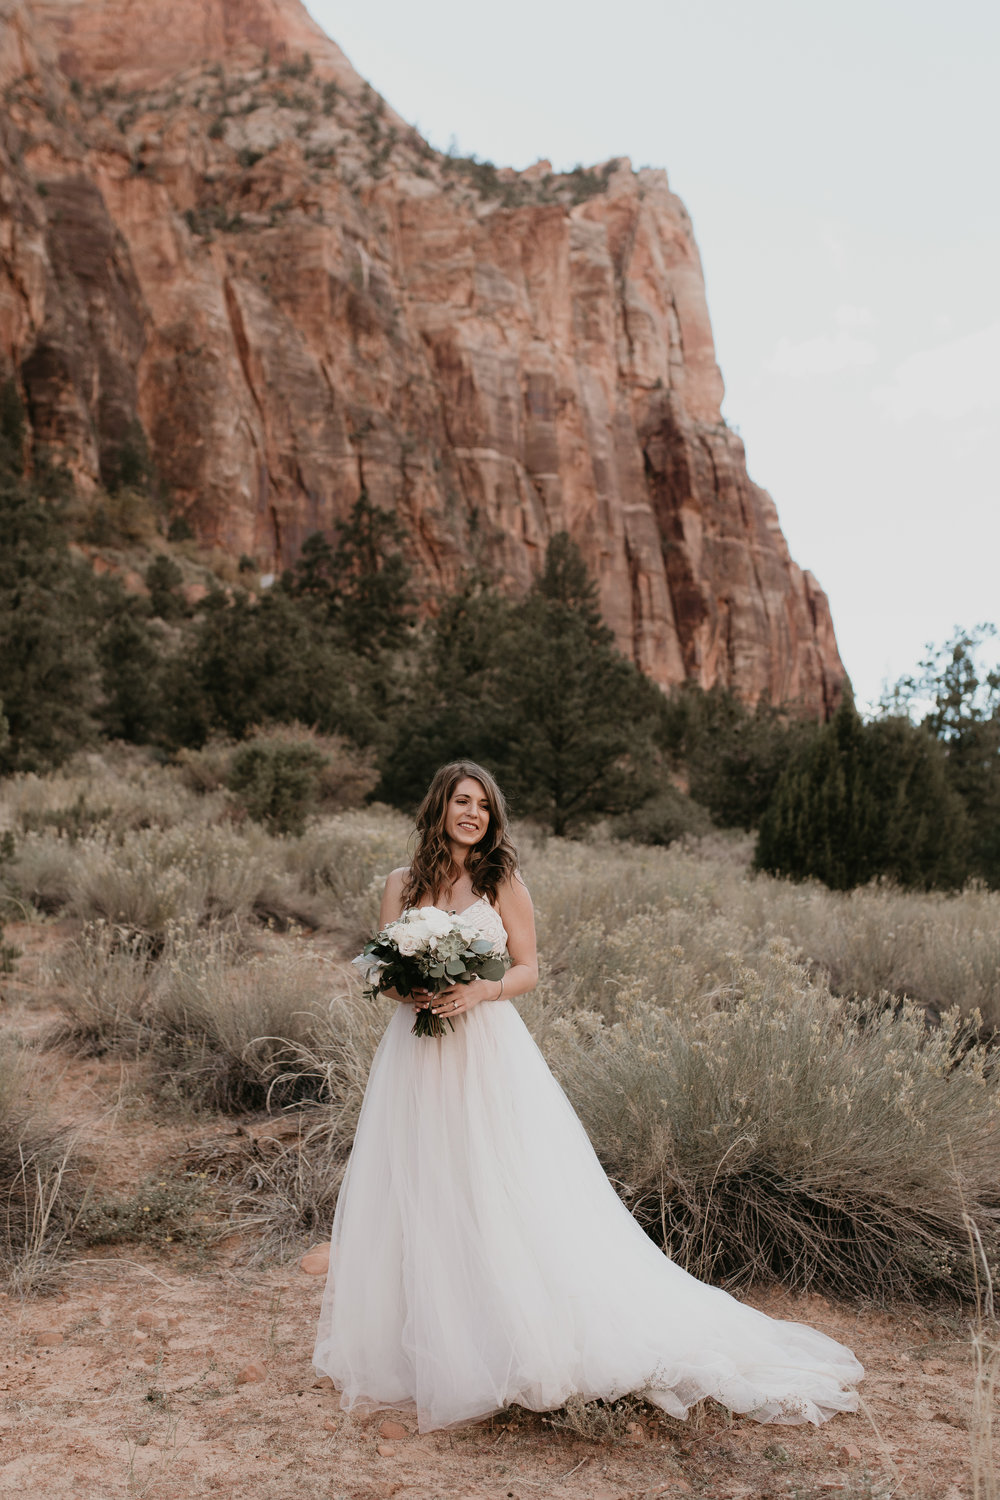 nicole-daacke-photography-zion-national-park-elopement-photographer-canyon-overlook-trail-elope-hiking-adventure-wedding-photos-fall-utah-red-rock-canyon-stgeorge-eloping-photographer-15.jpg